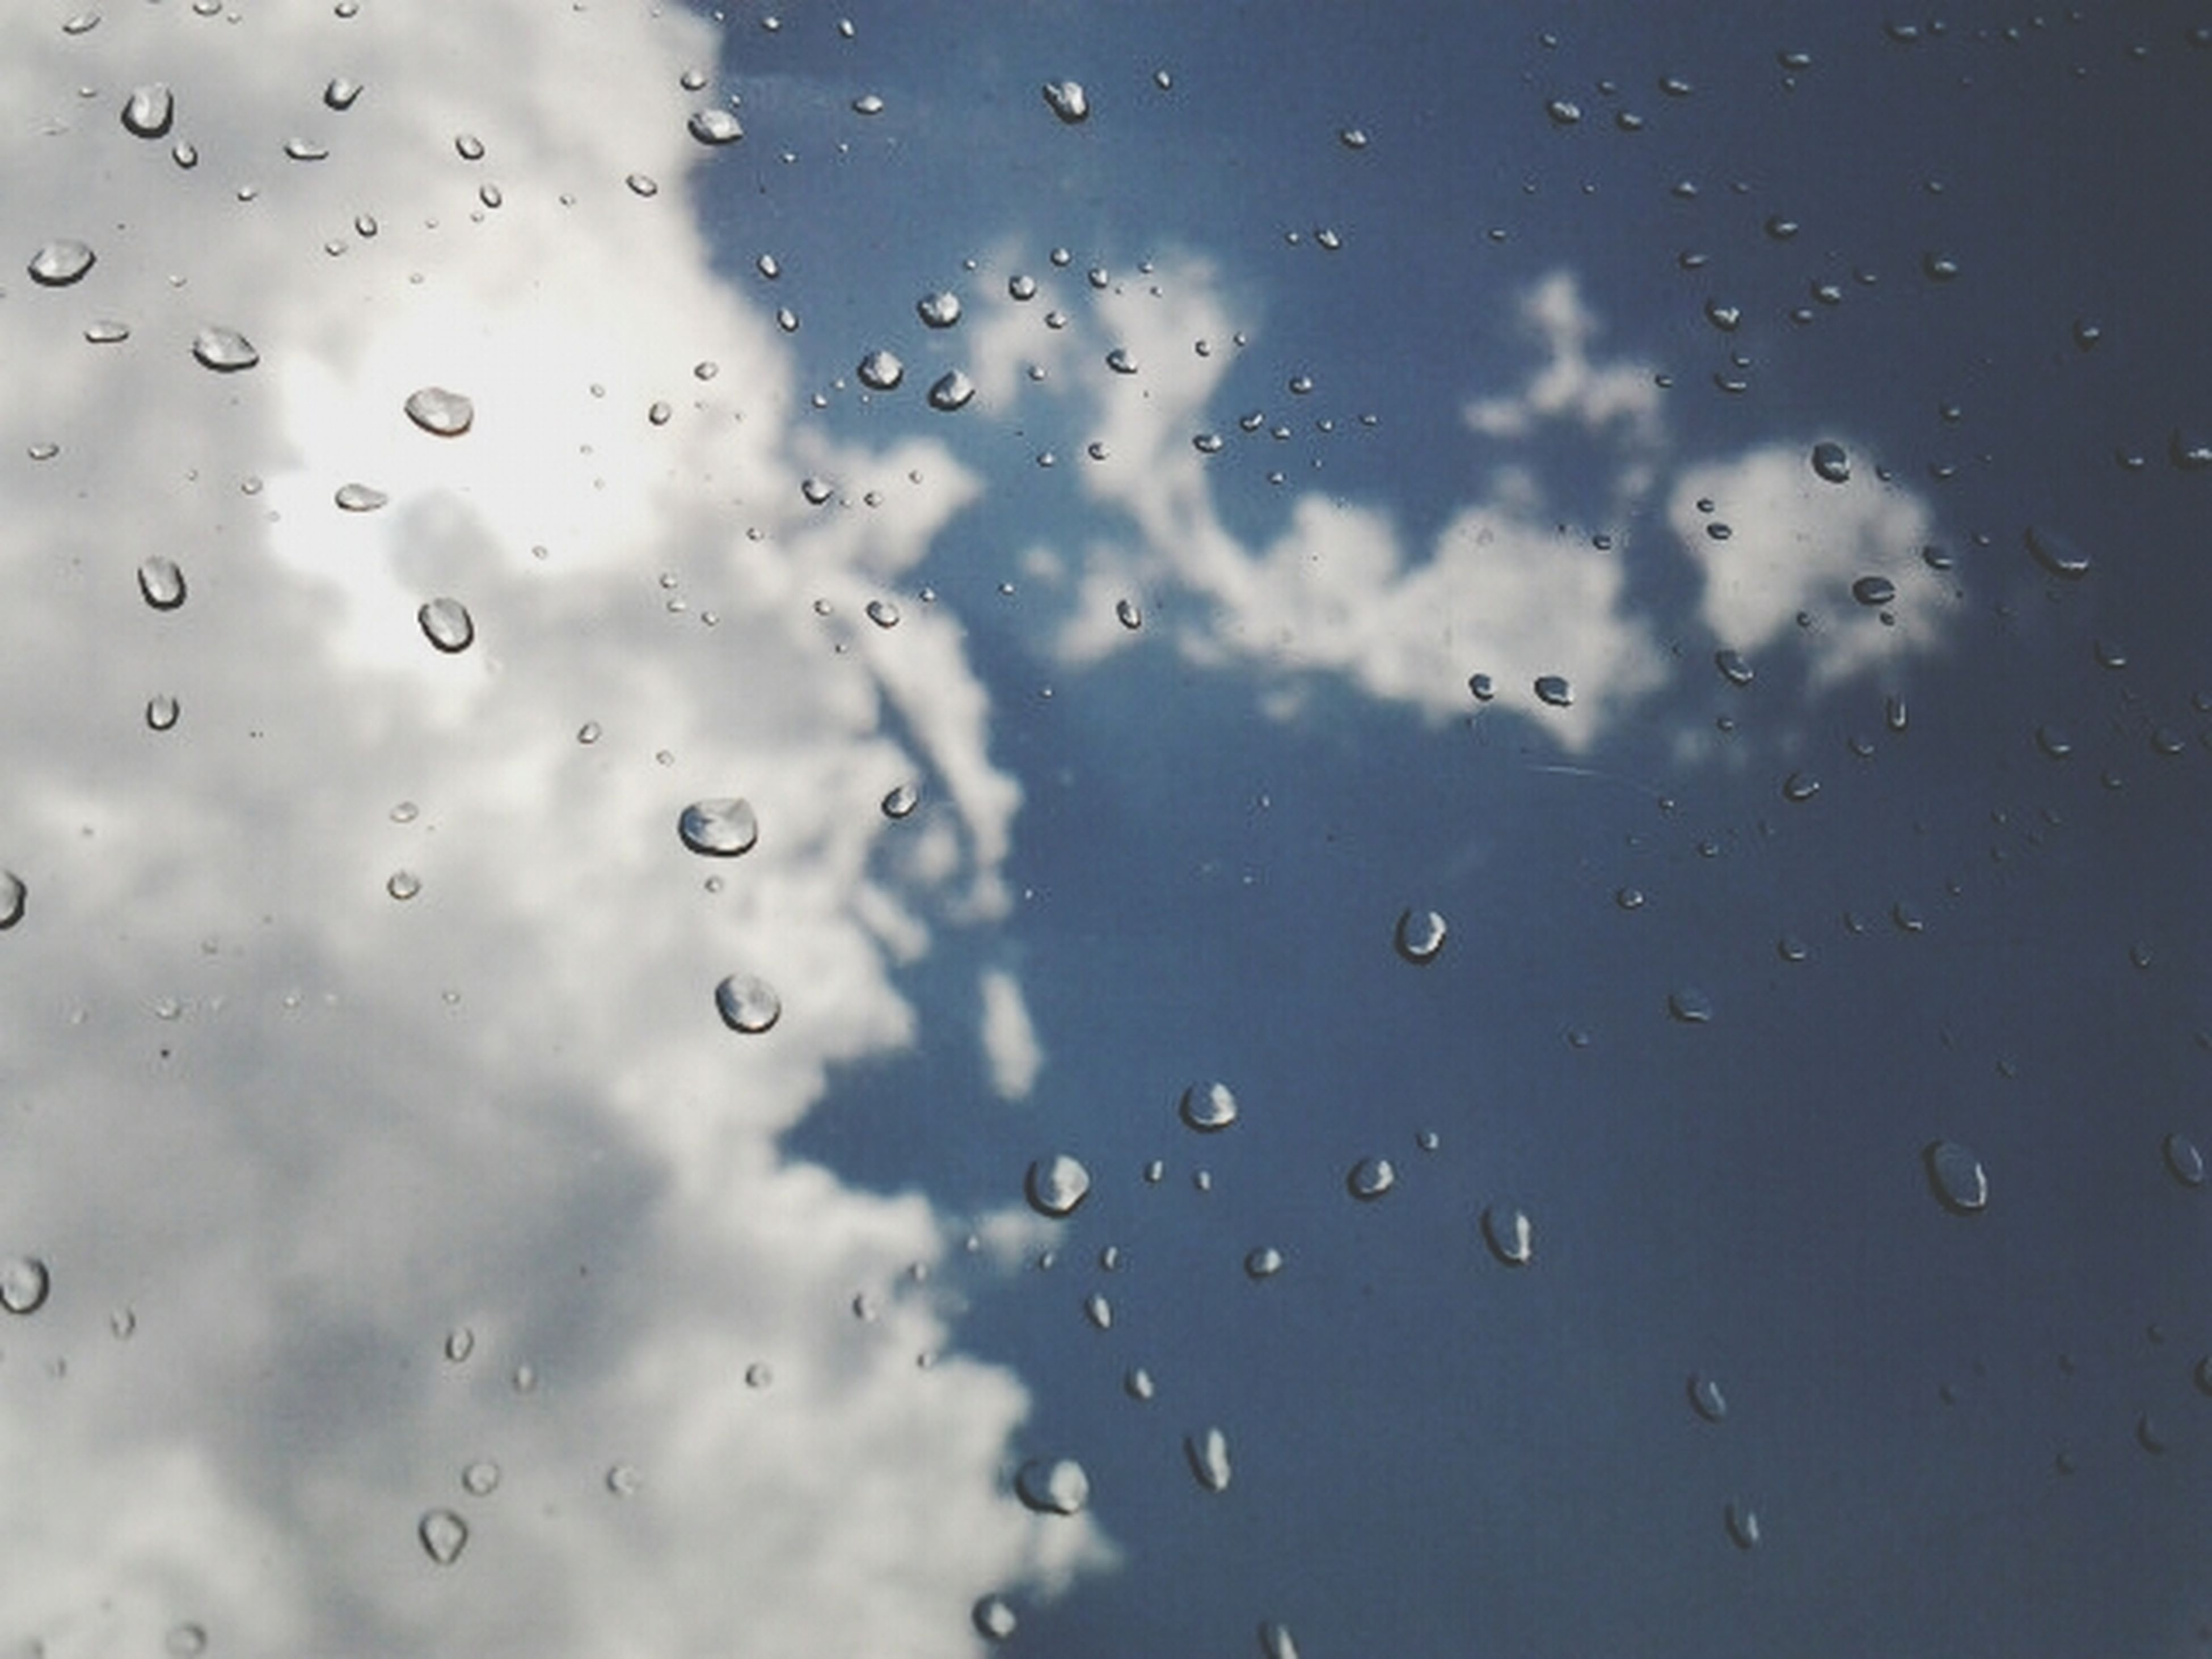 drop, wet, window, transparent, water, full frame, backgrounds, sky, rain, indoors, glass - material, weather, raindrop, cloud - sky, focus on foreground, nature, glass, close-up, no people, low angle view